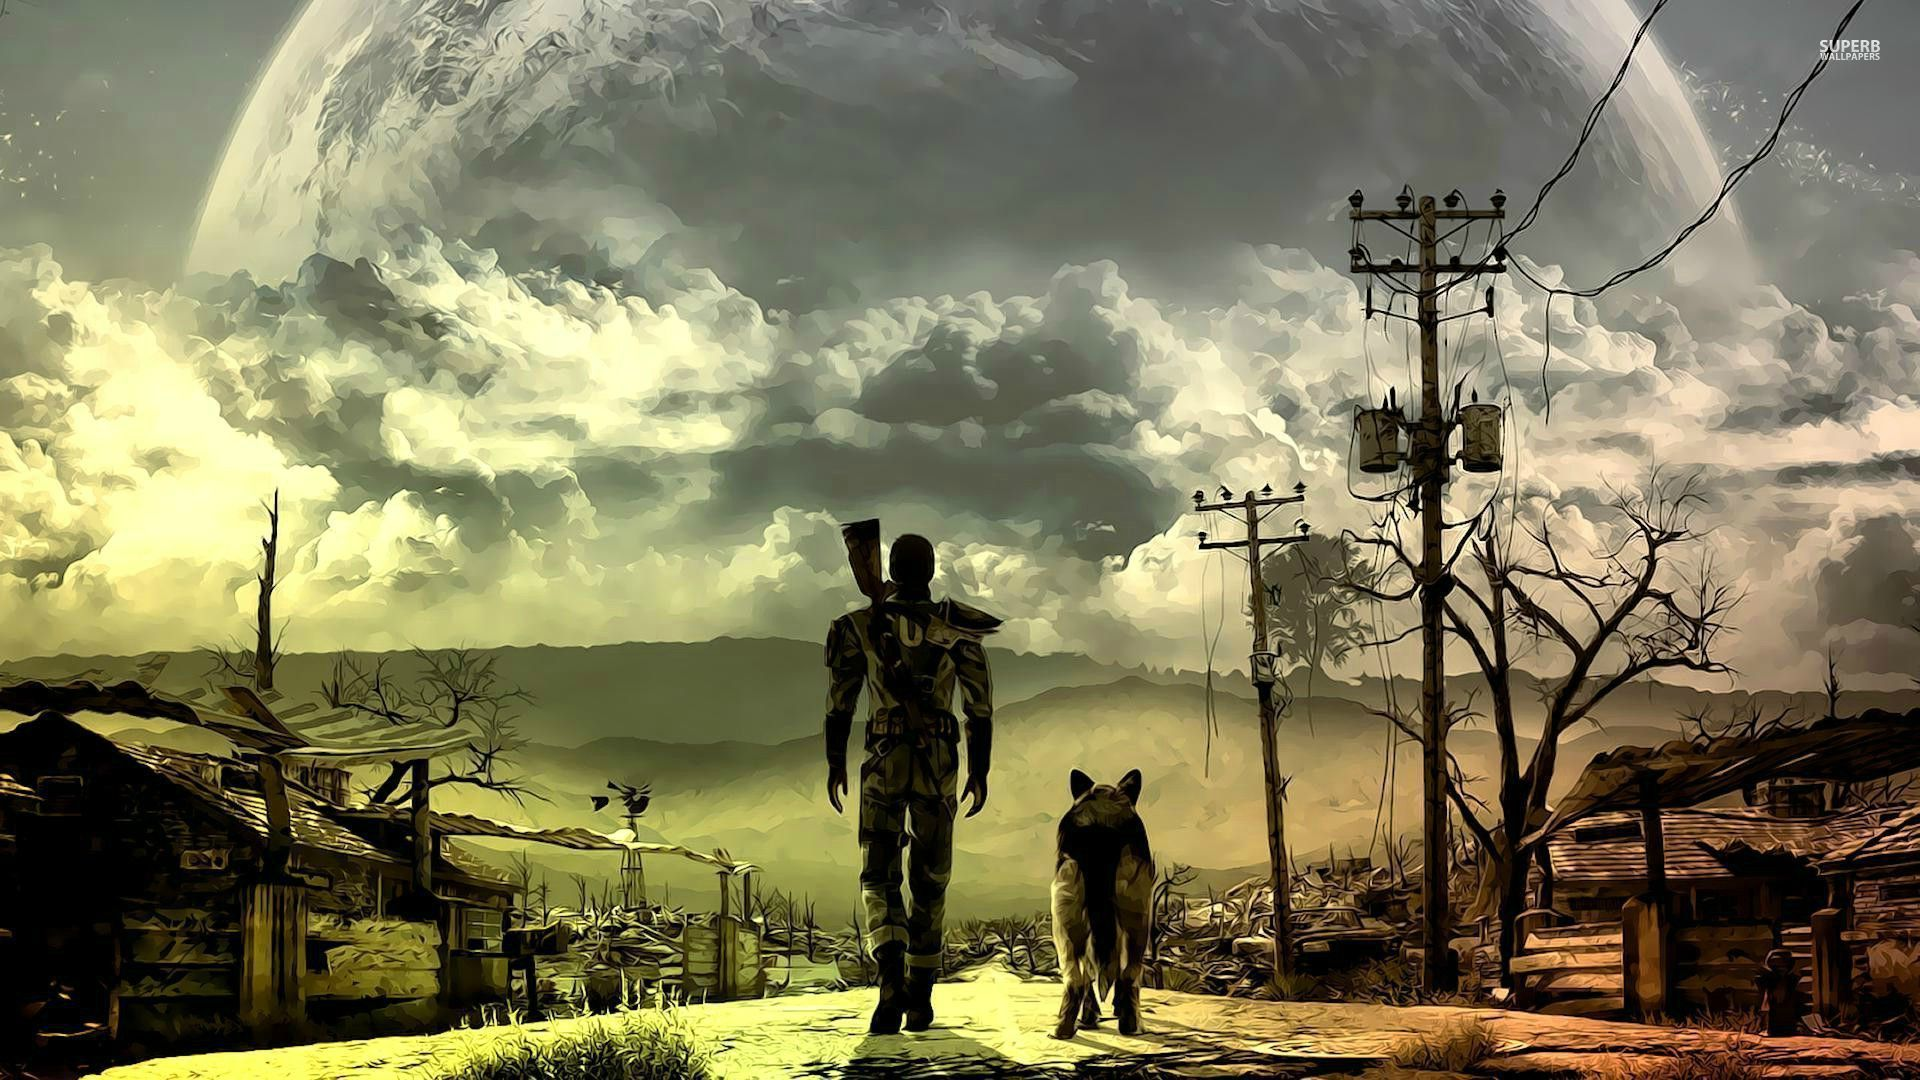 Fallout Wallpaper 1920x1080 Recherche Google Games Fallout